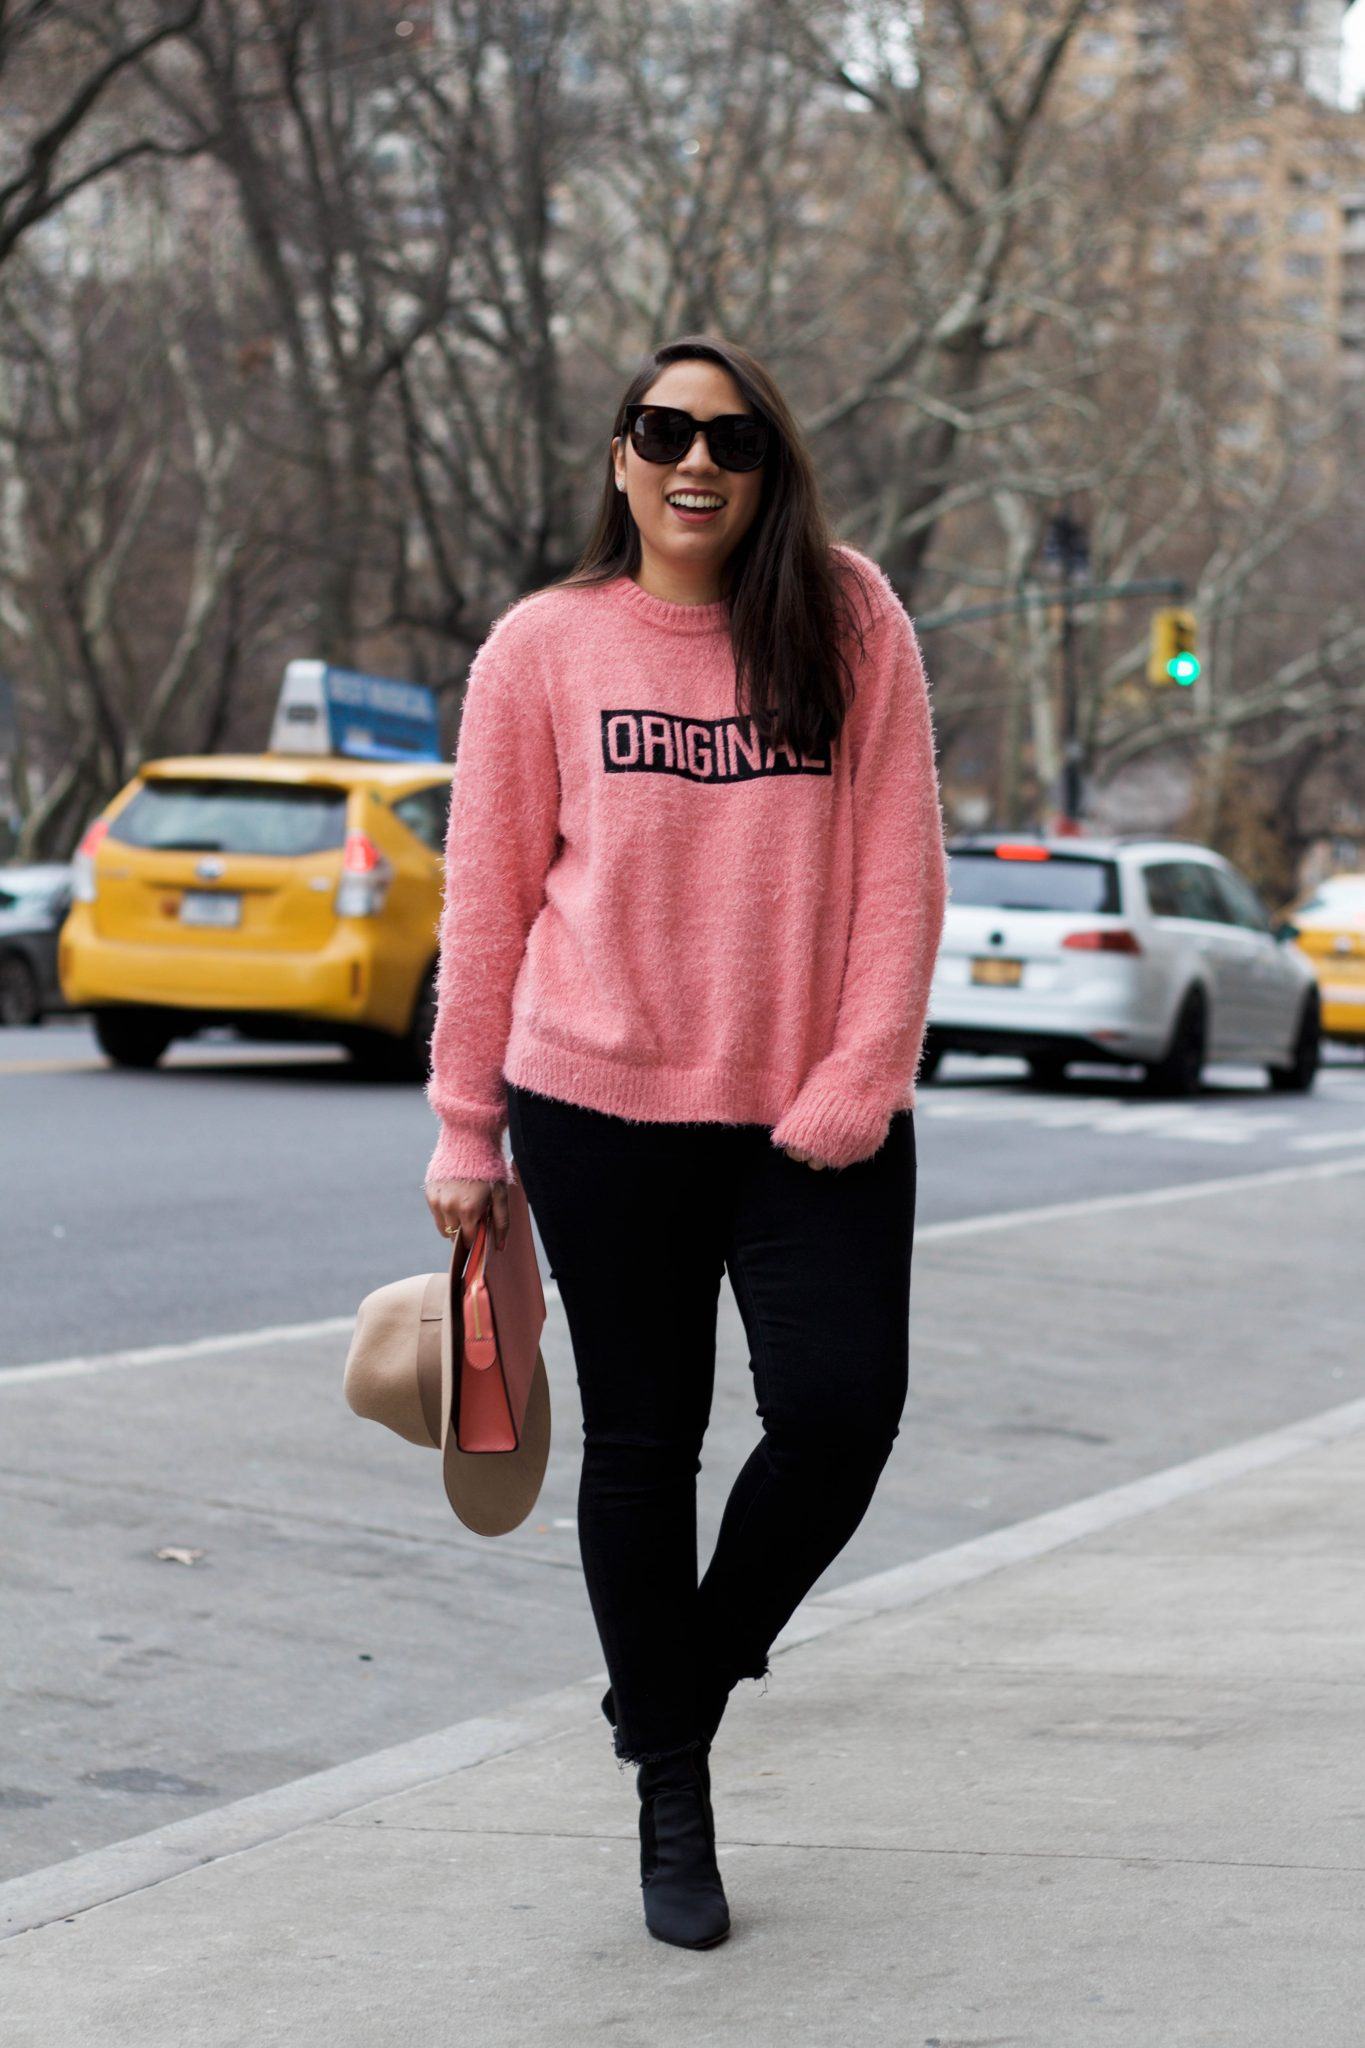 My 2018 New Years Goals by popular NYC fashion blogger Live Laugh Linda